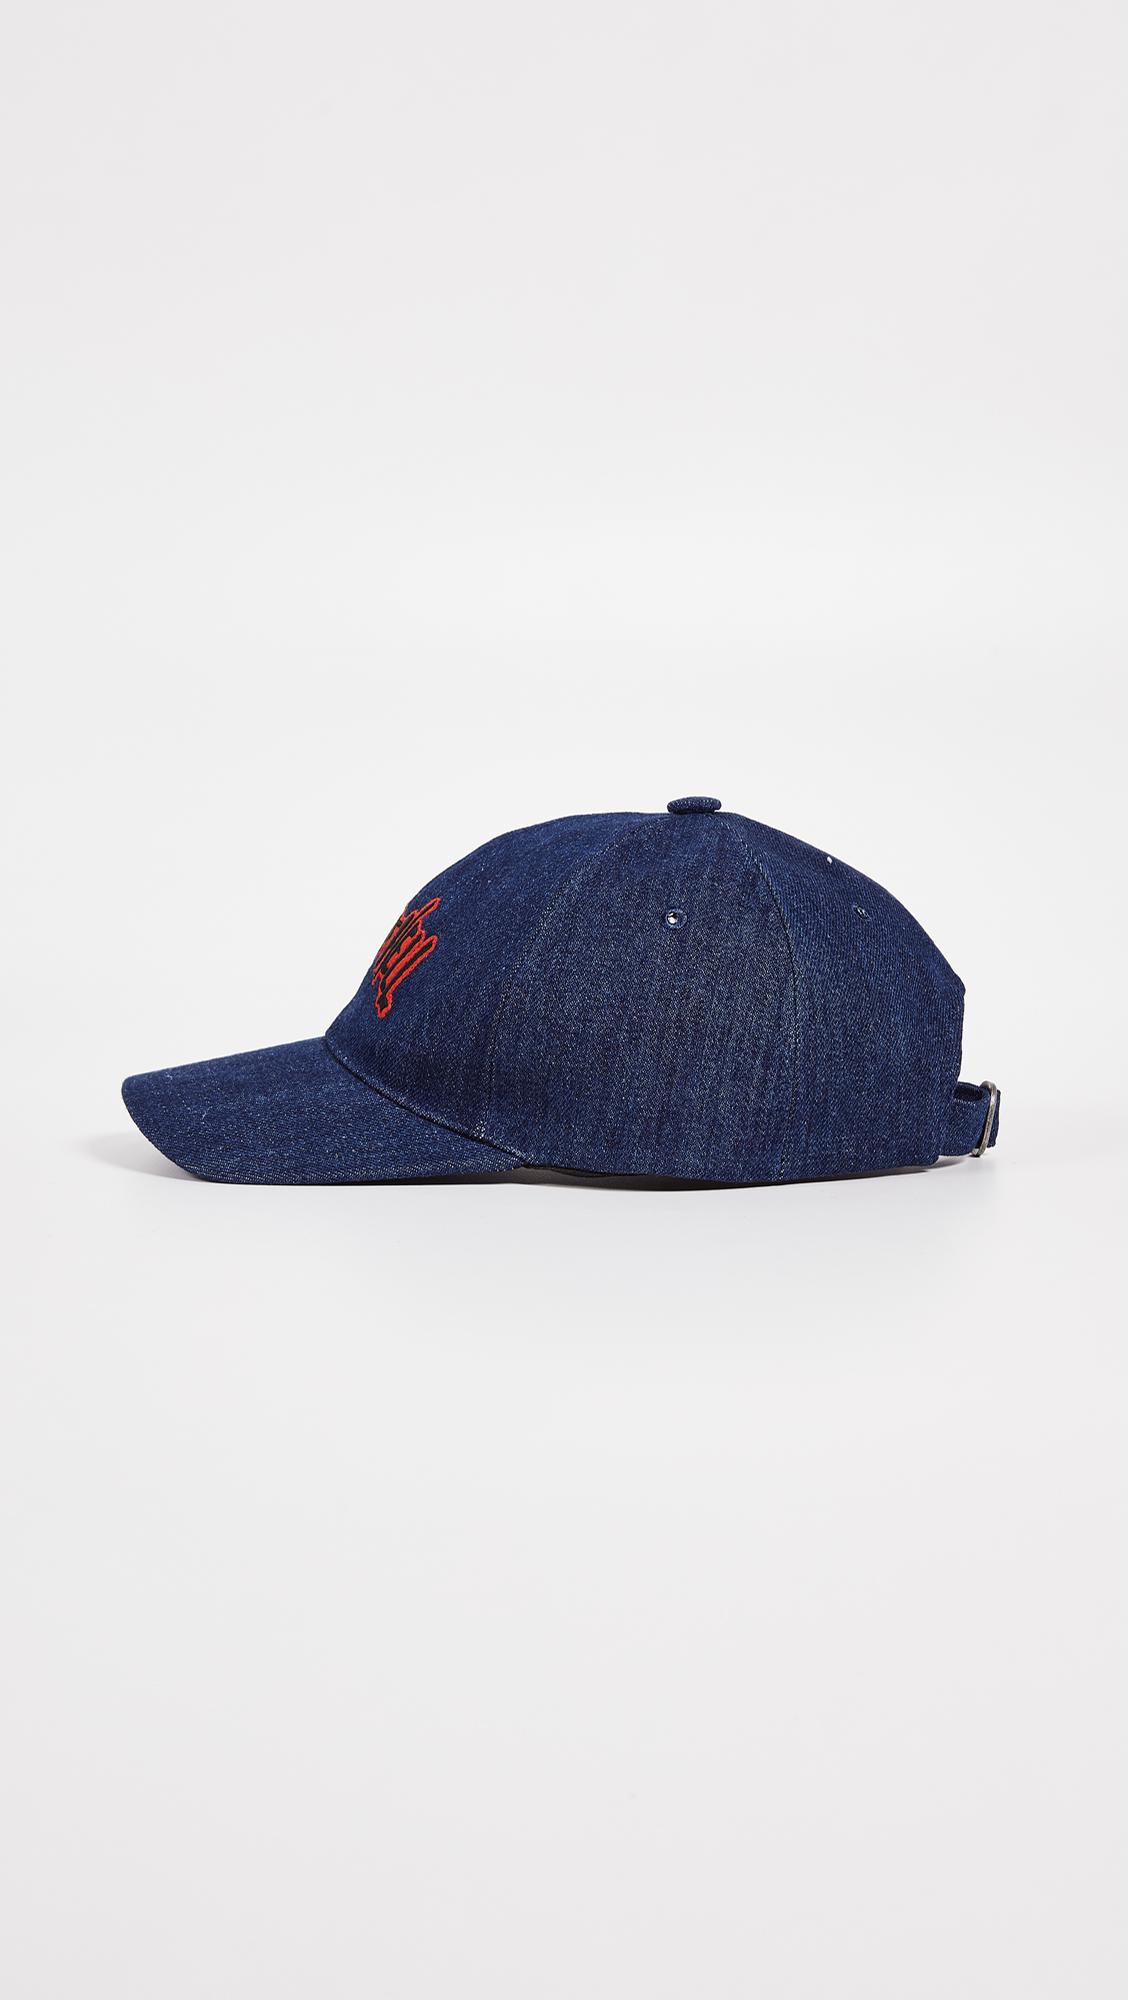 5d28c9b32d4 Lyst - A.P.C. Aaron Embroidered Denim Baseball Cap in Blue for Men